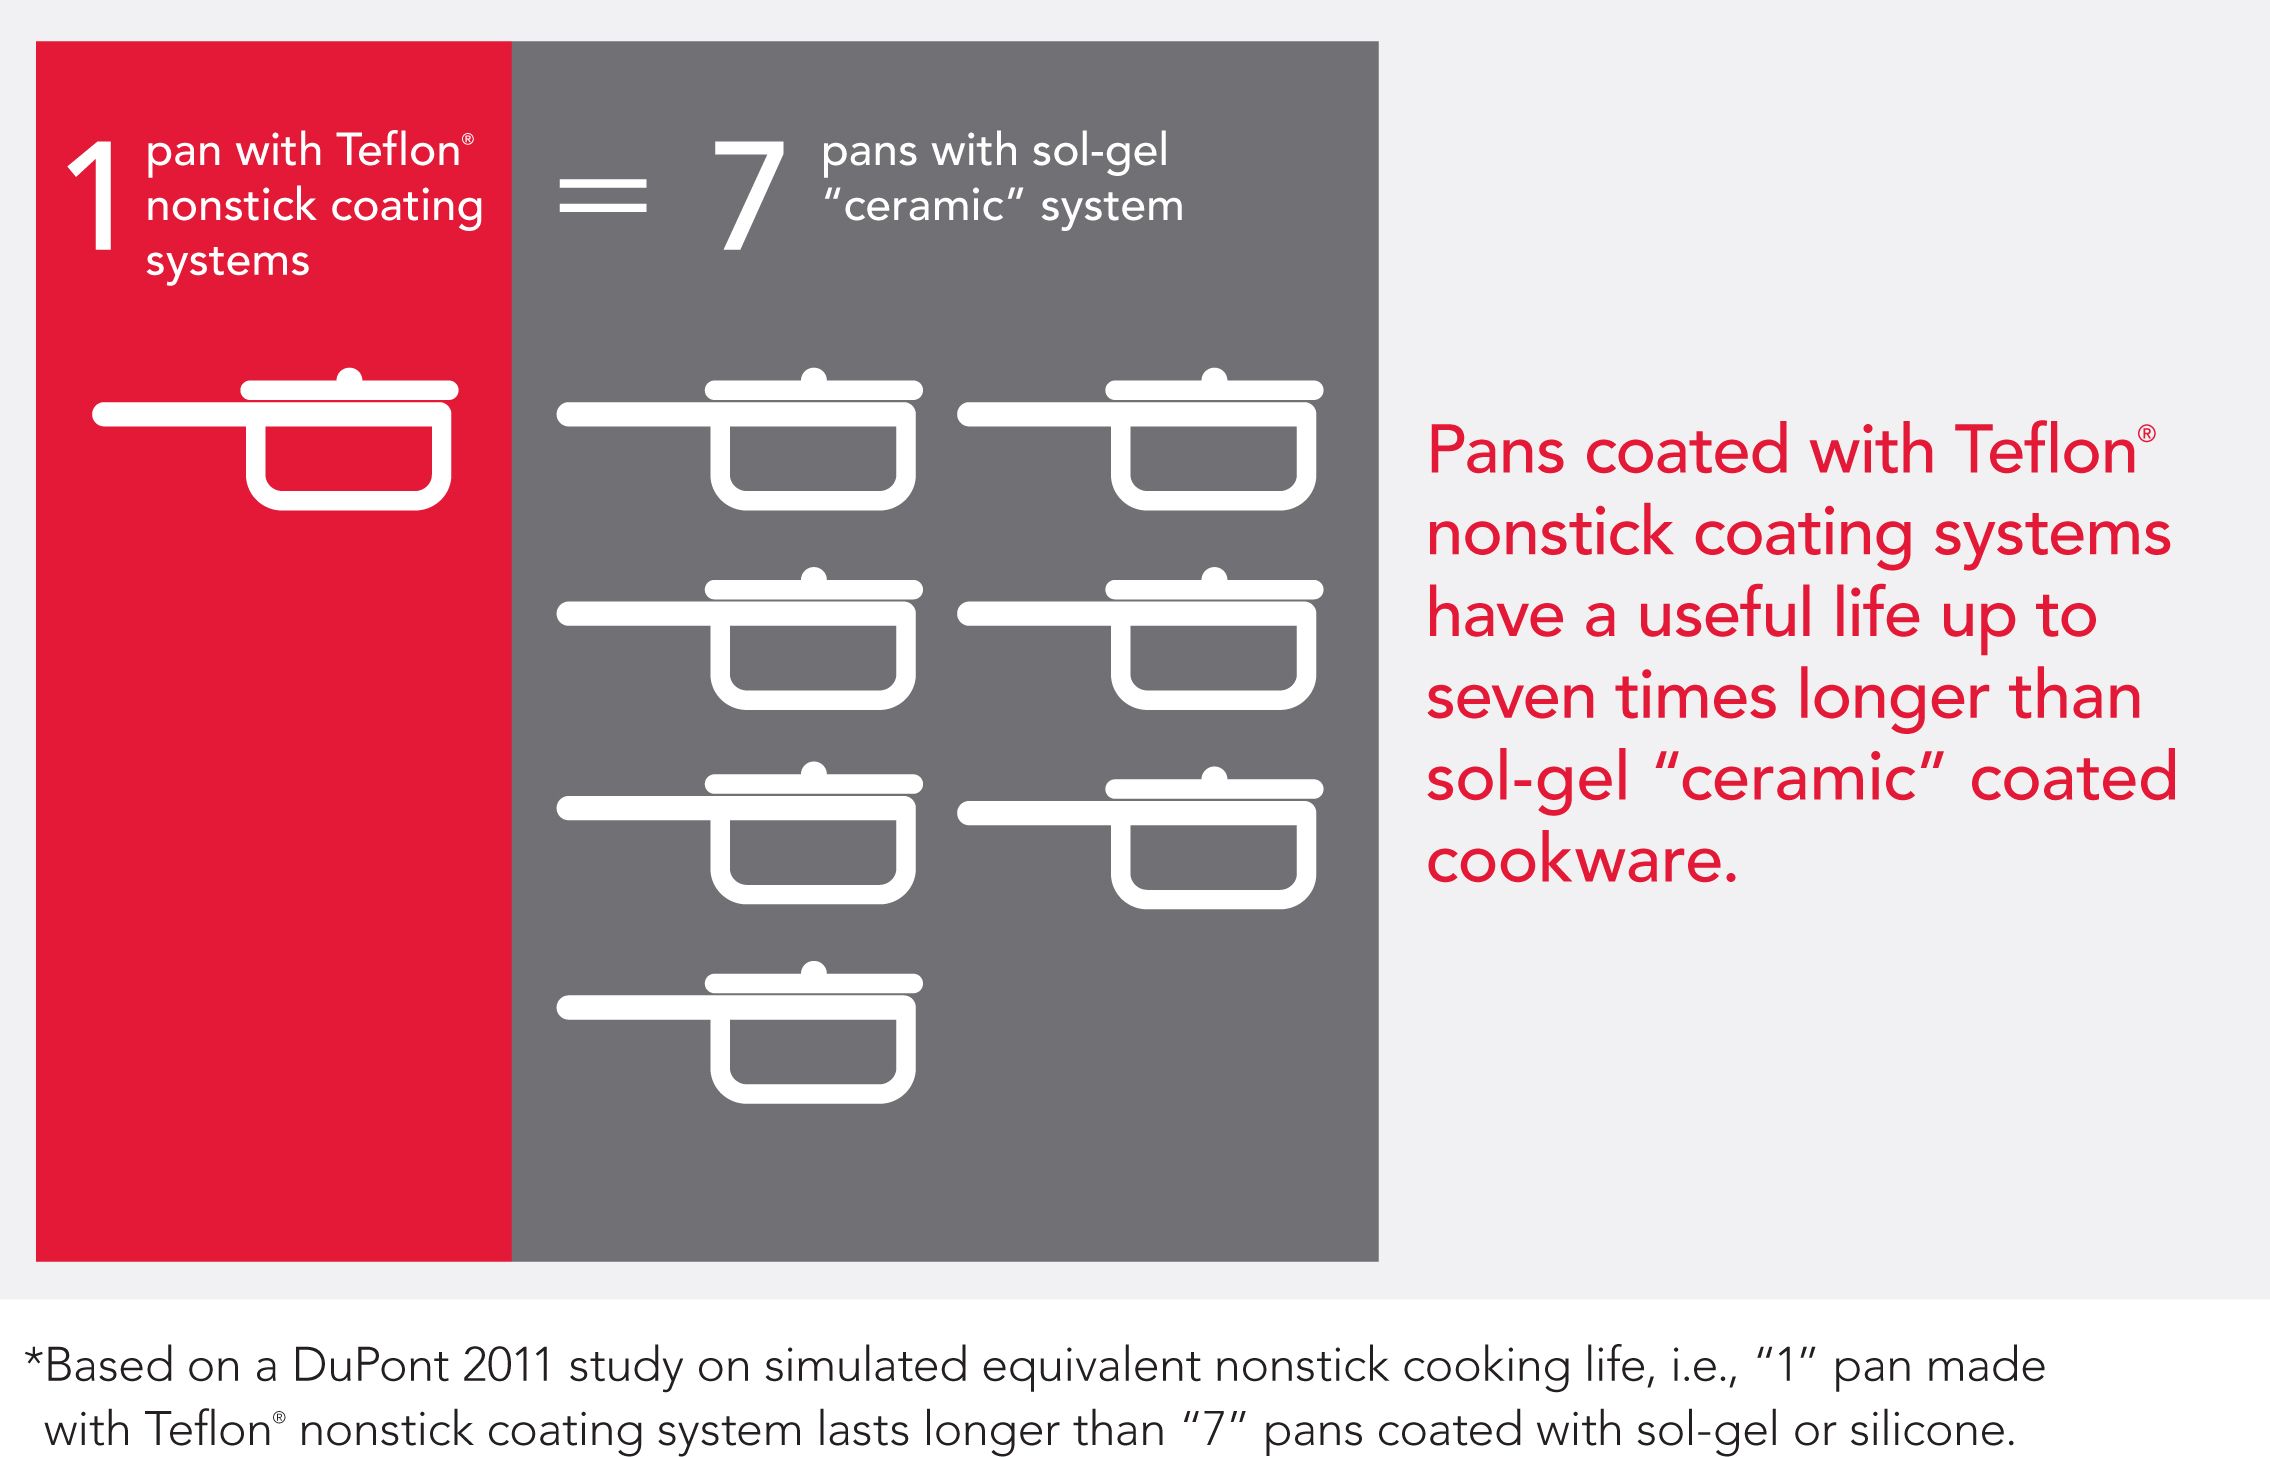 Tests Show Dupont Teflon 174 Nonstick Coatings For Cookware